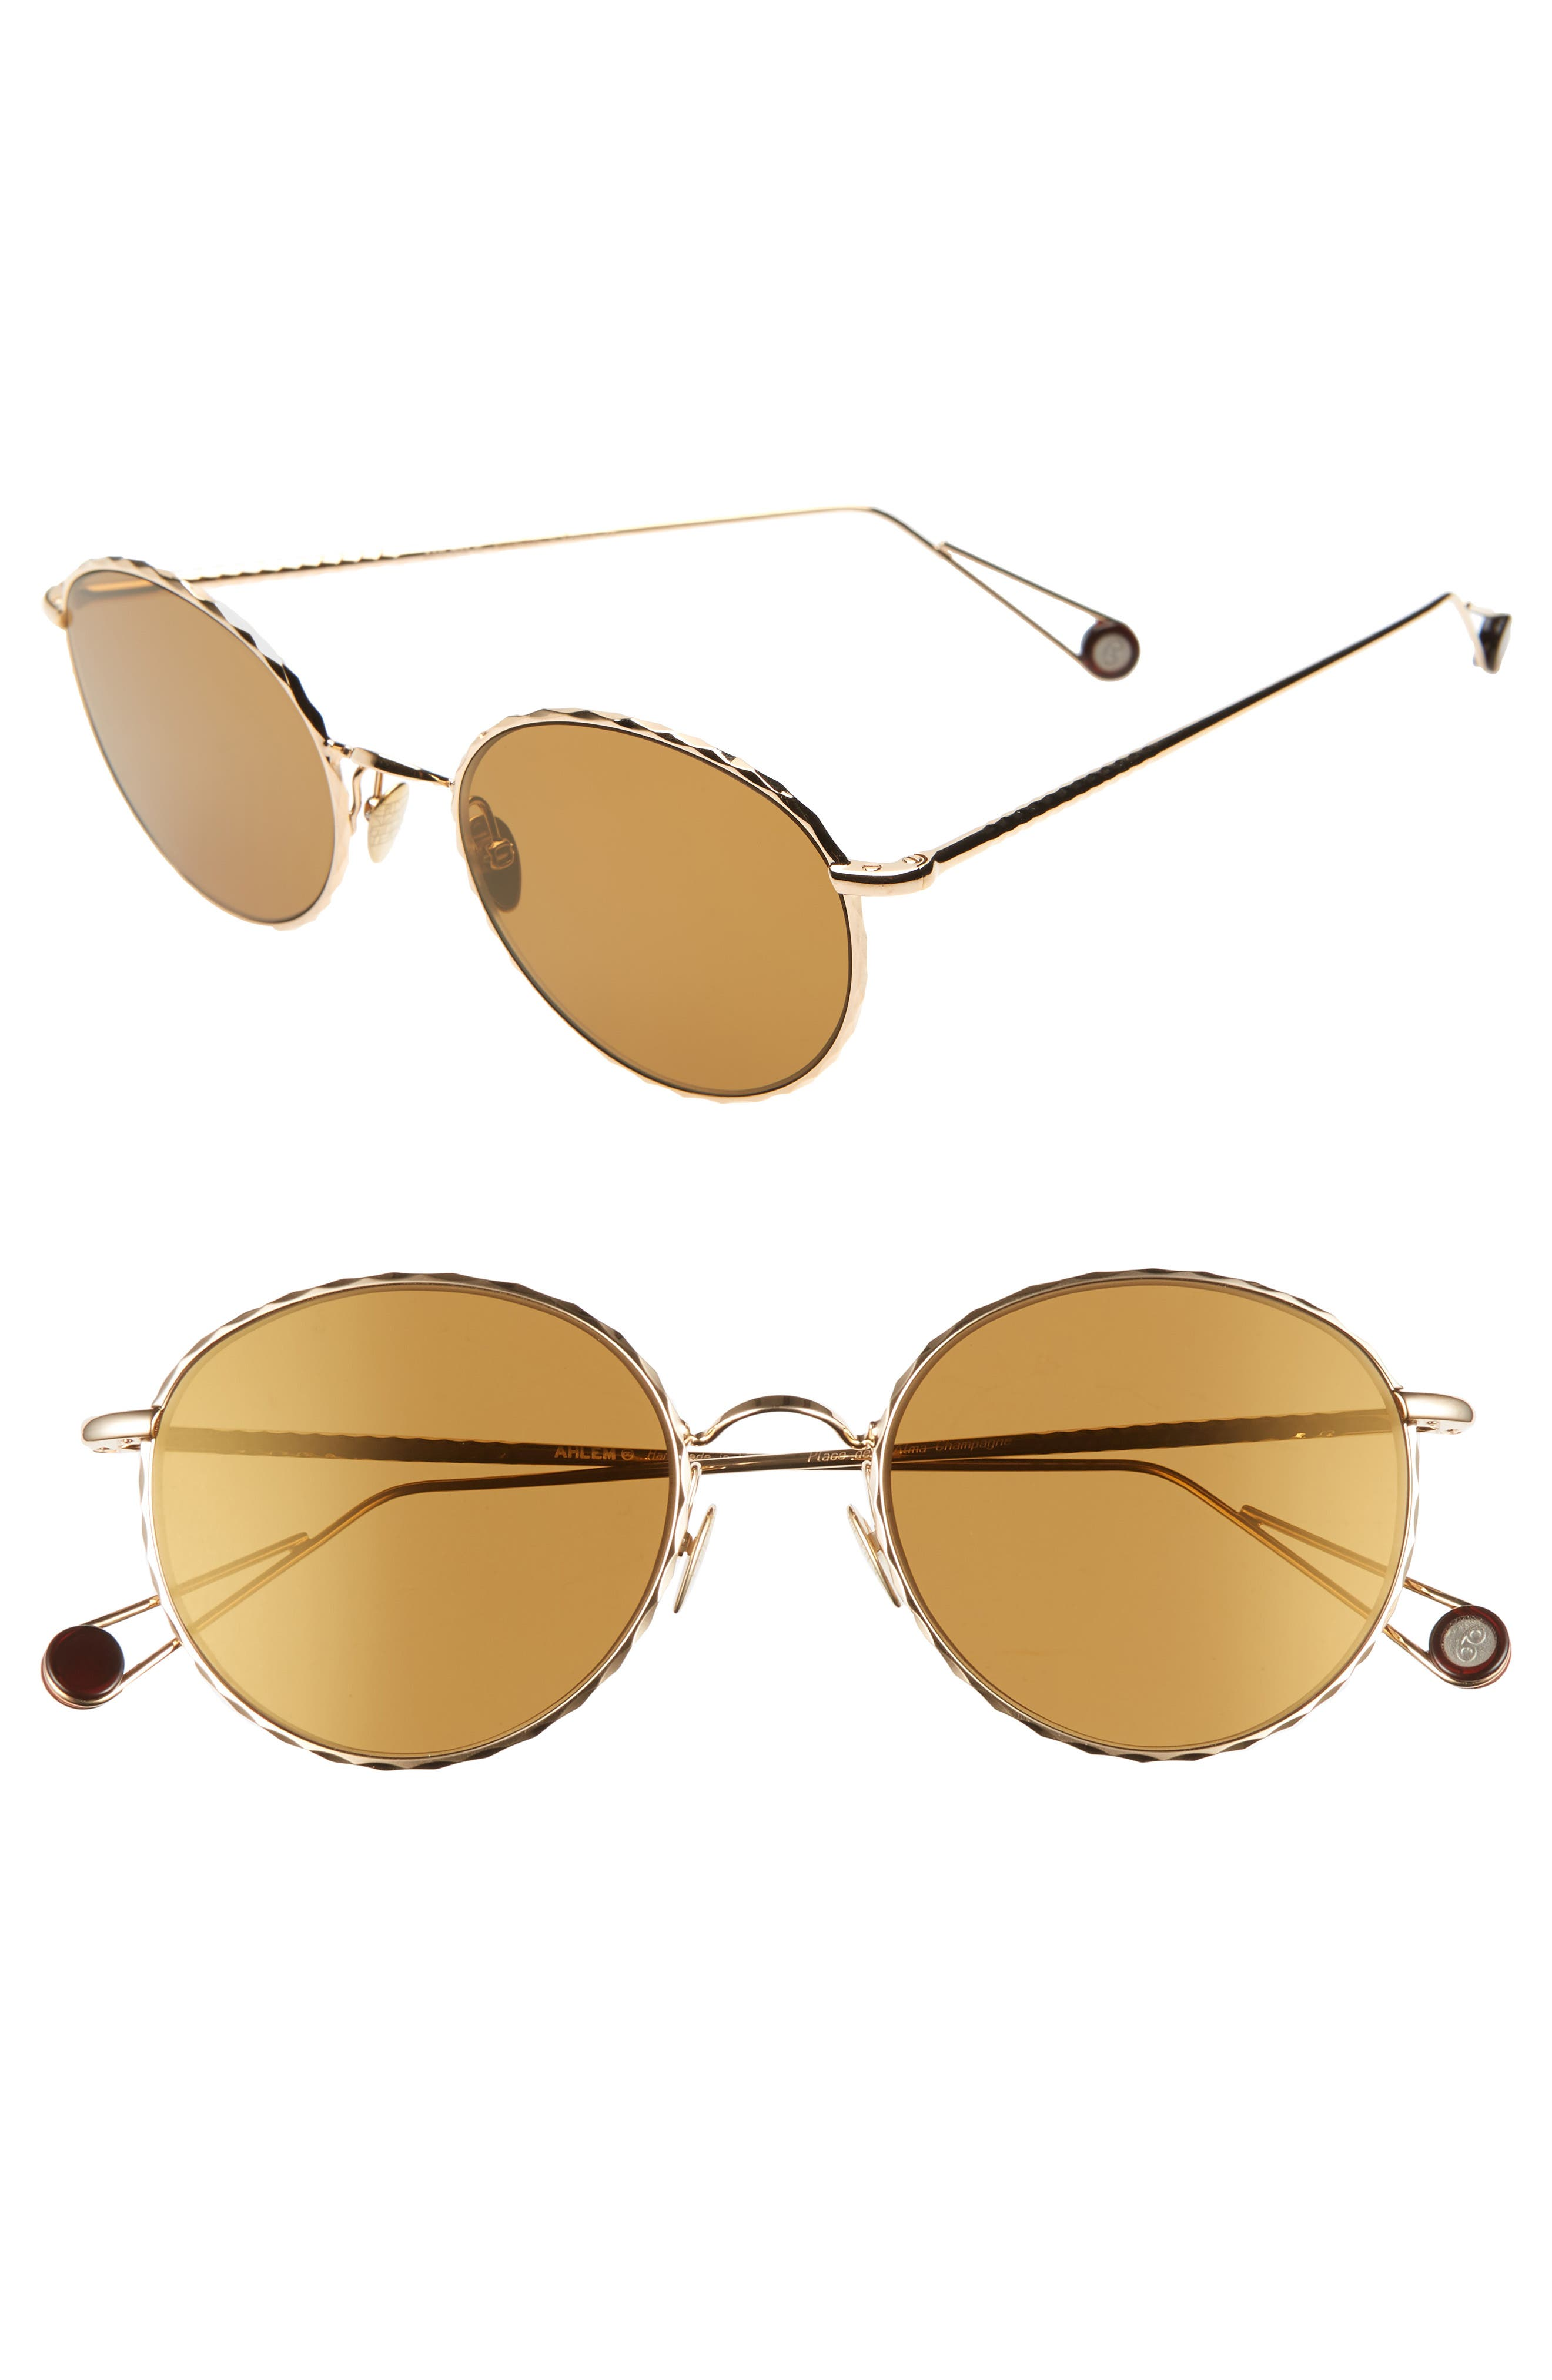 AHLEM Place De L'Alma 54Mm Round Sunglasses in Yellow Gold